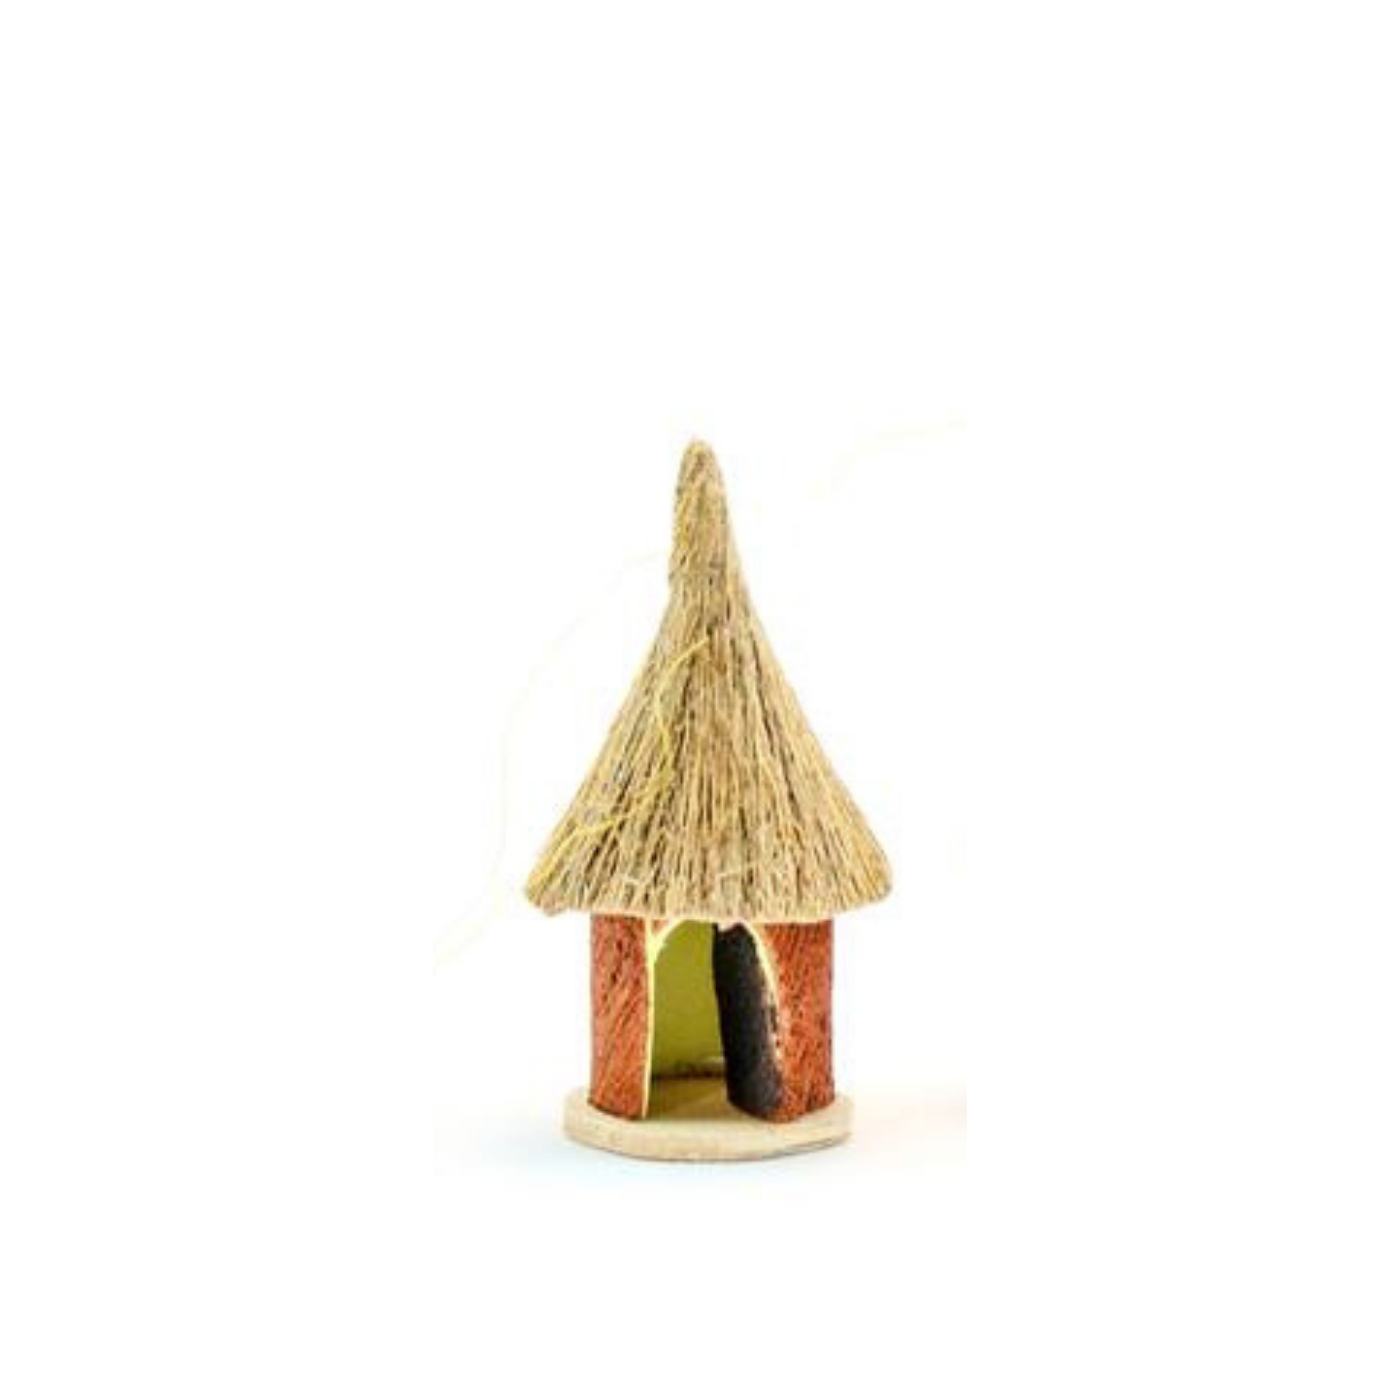 Bark Cloth Hut Ornament